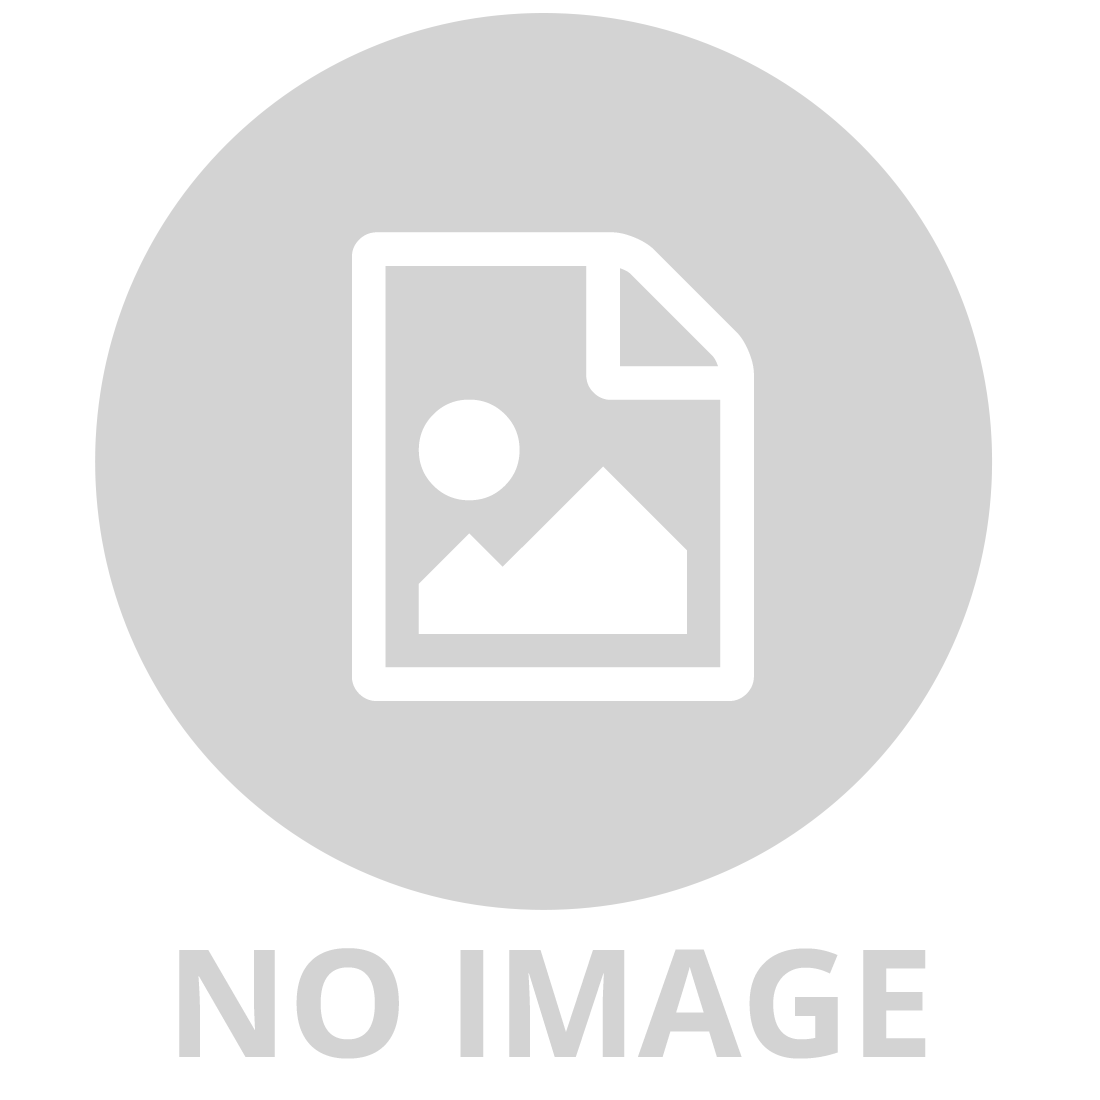 HUMBROL ENAMEL PAINT GLOSS WHITE #22